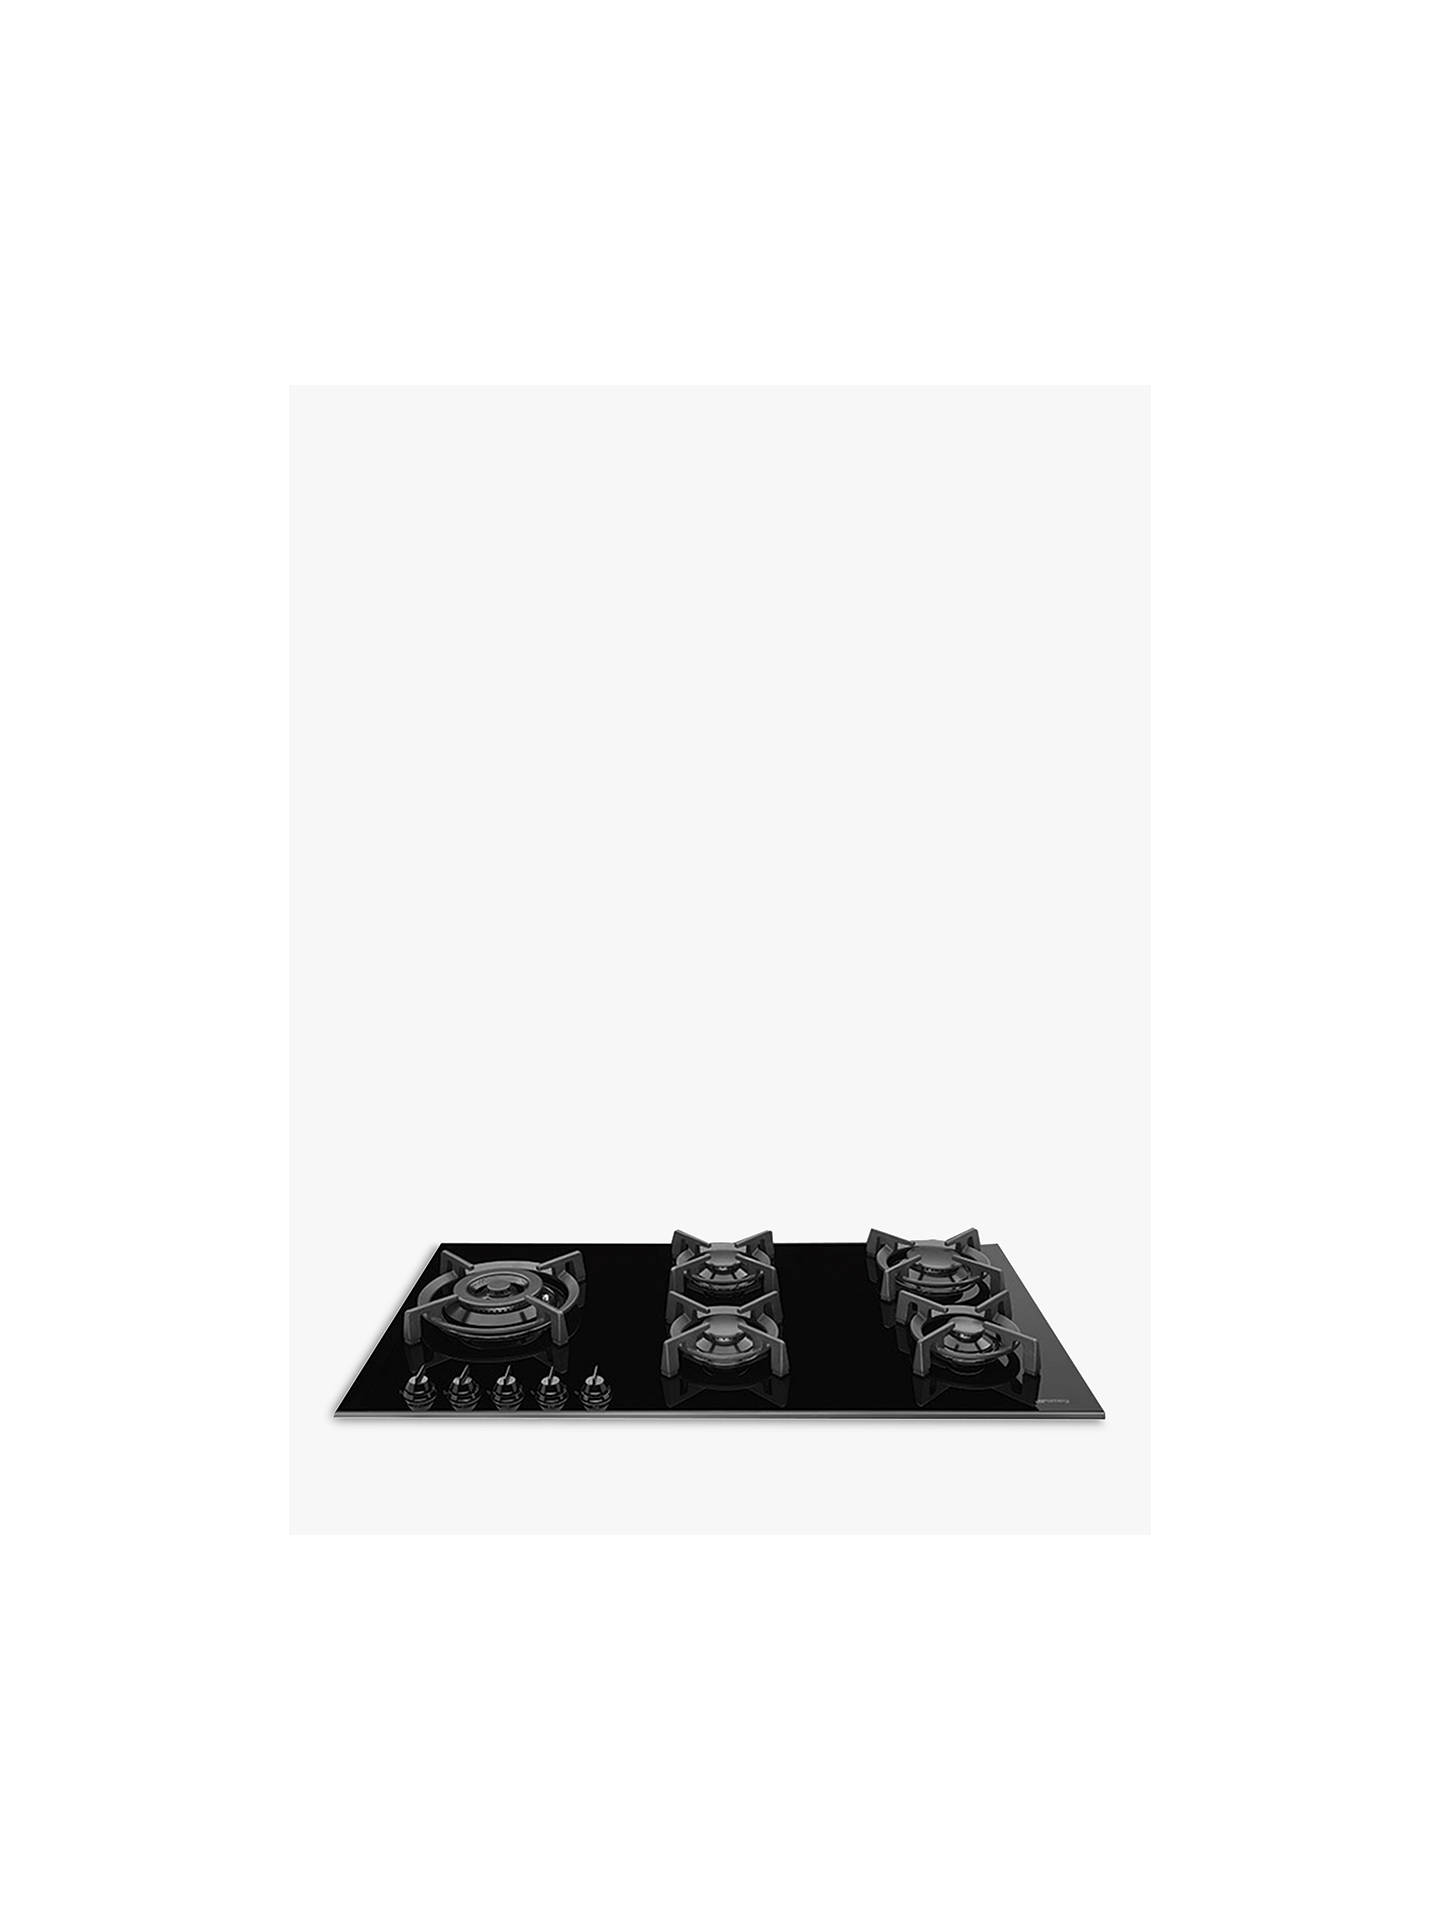 BuySmeg PV695LCNX Dolce Stil Novo Gas Hob, Black/Stainless Steel Online at johnlewis.com